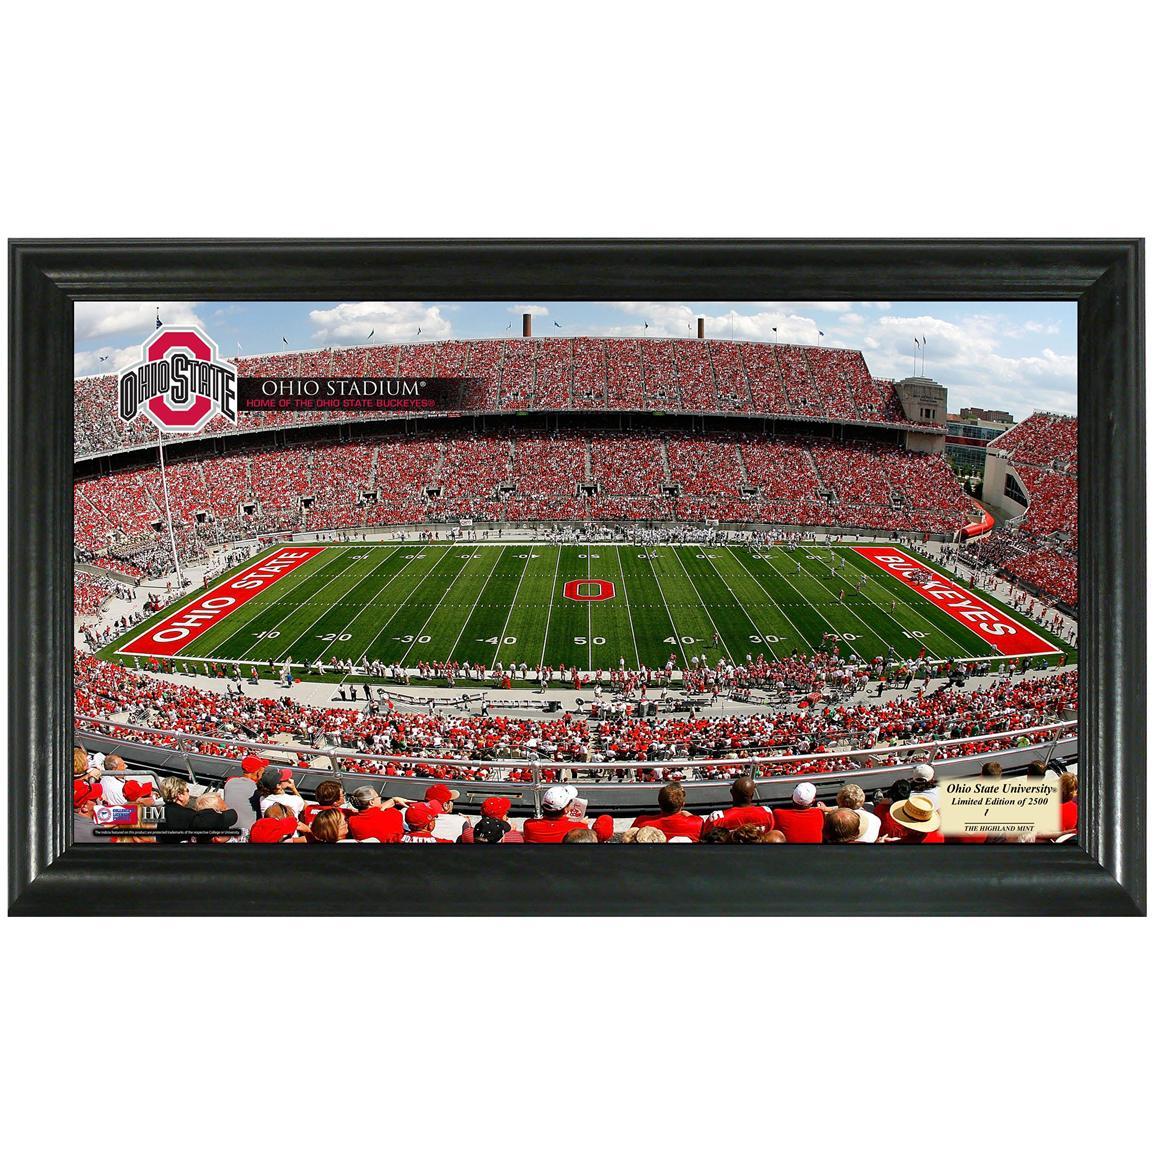 Highland Mint® Ohio State University Stadium Gridiron Photo Display